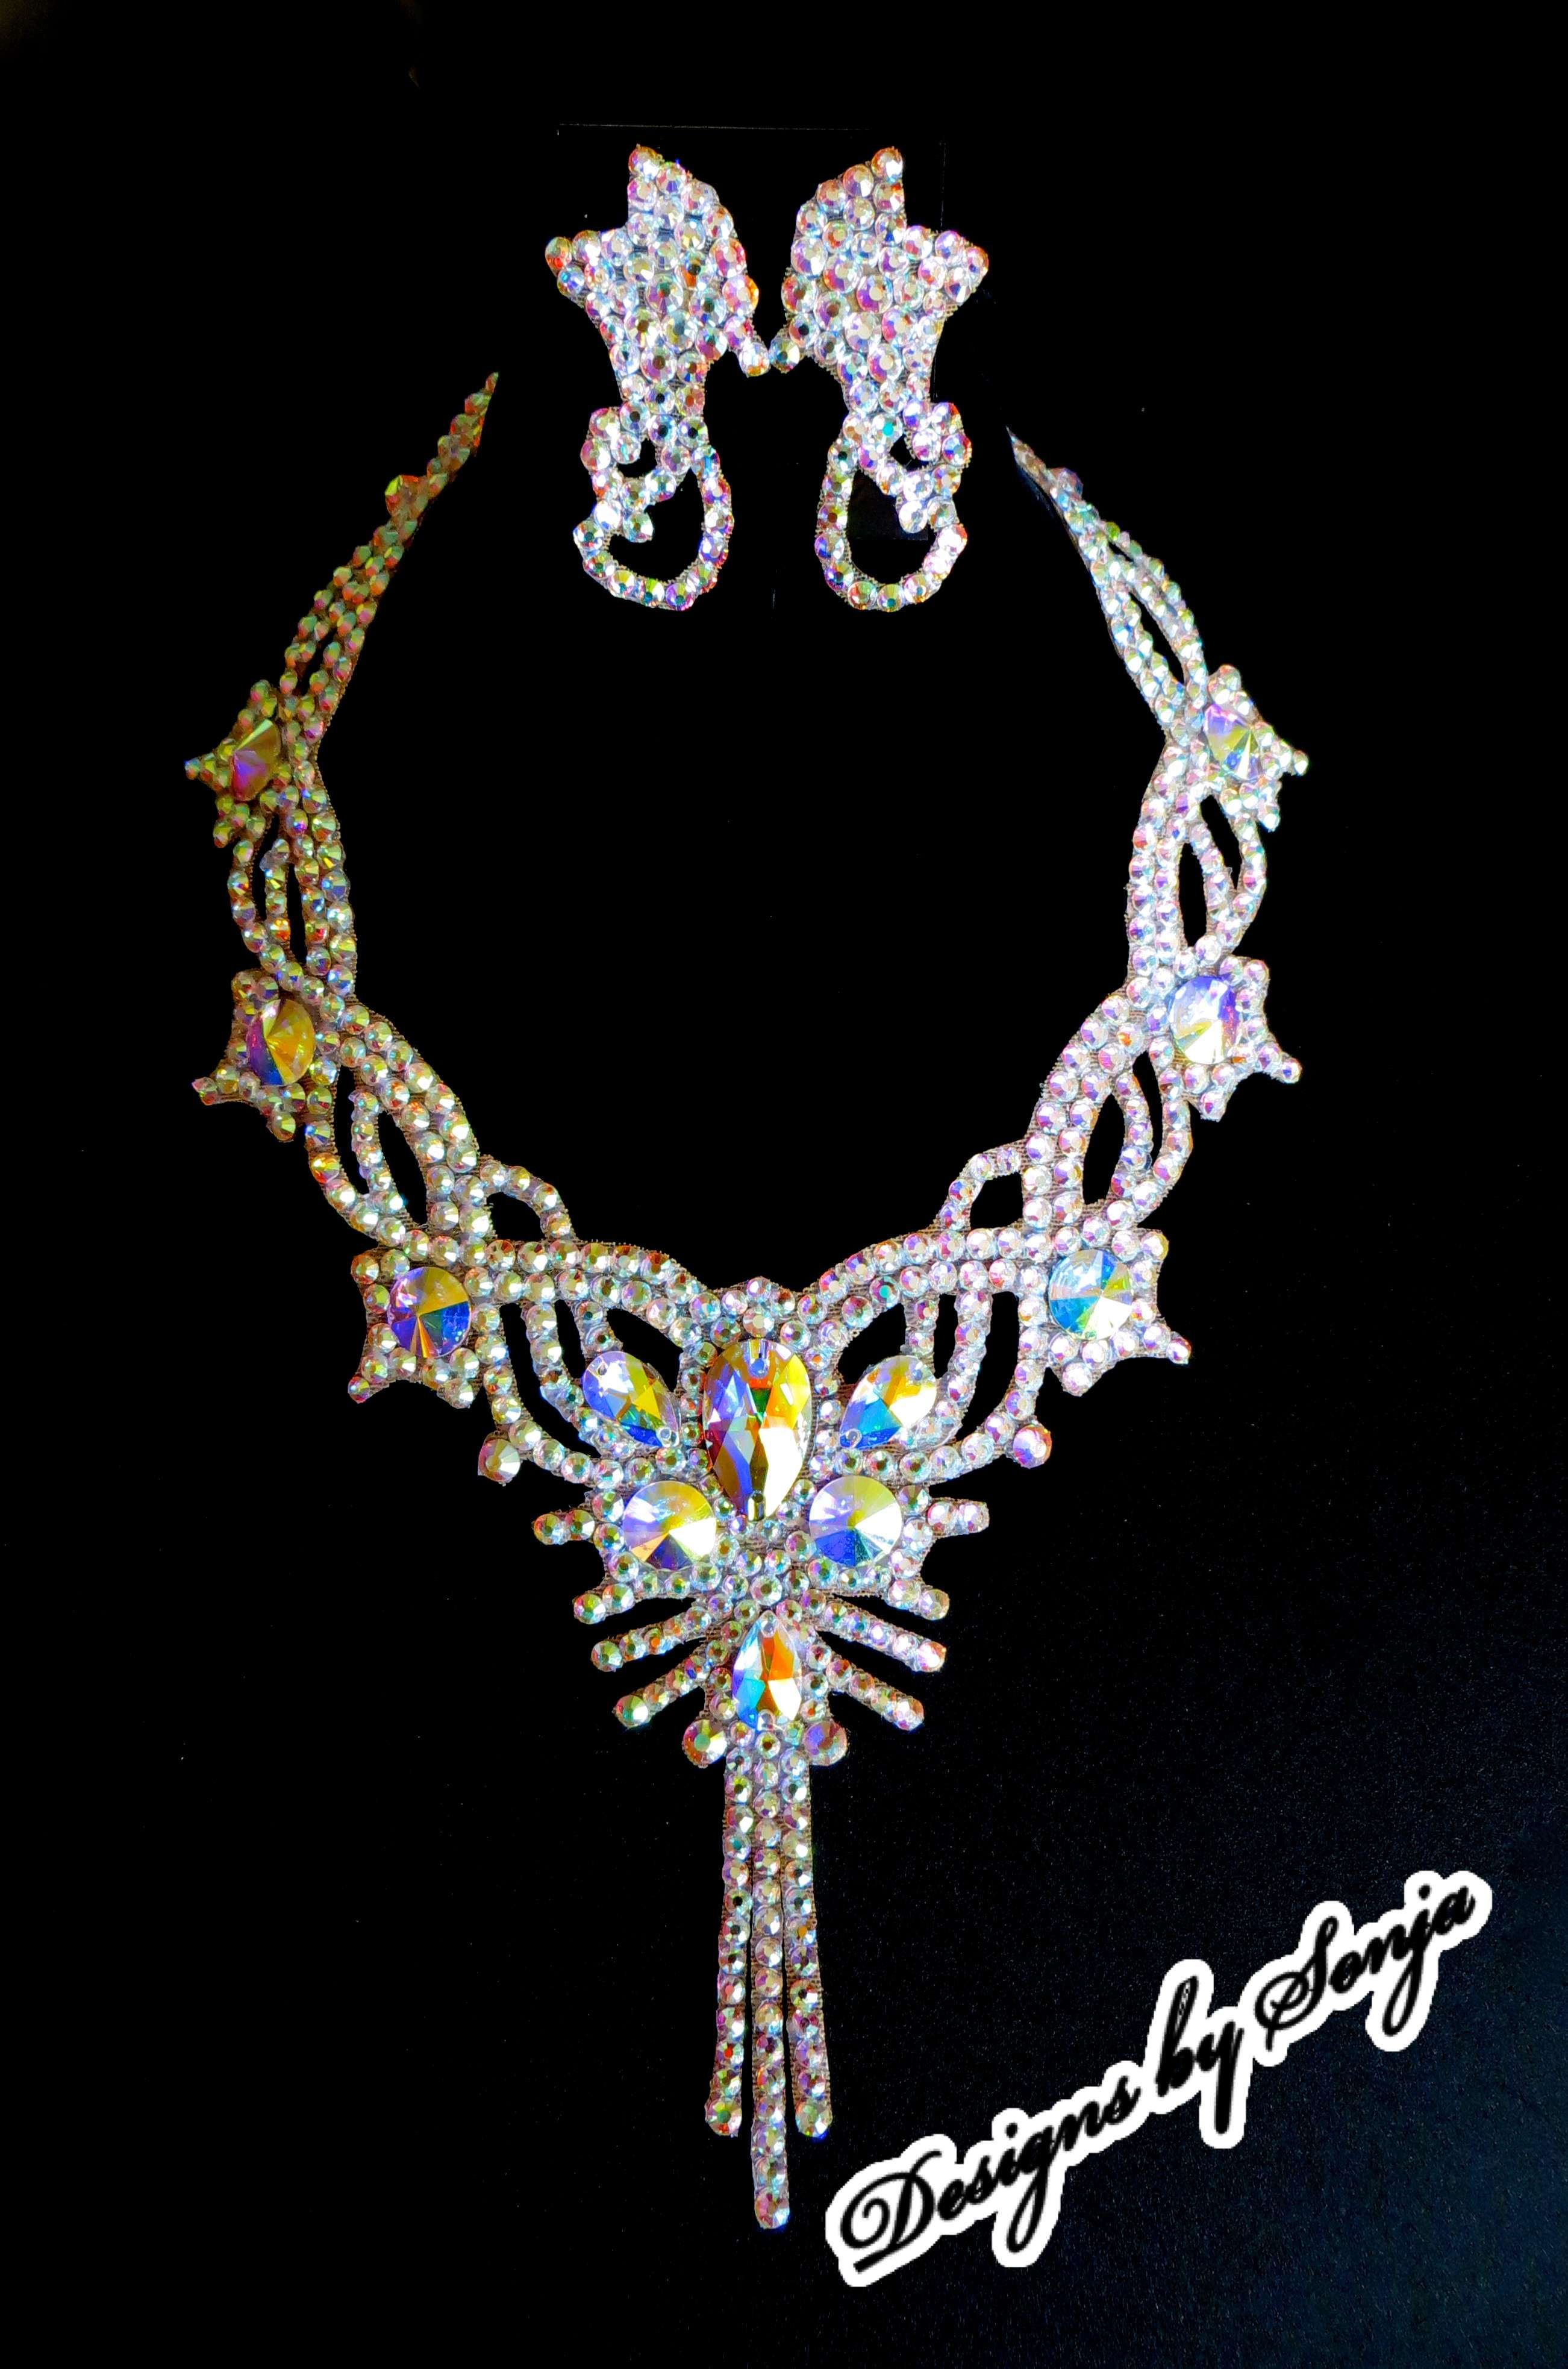 Ballroom jewelry, ballroom accessories, Swarovski Crystal necklace and earrings designed and created by Sonja Ballin. All Jewelry Designs copyright ©2014, Sonja Ballin of Tampa Bay, Florida. www.sonjadesigns.com Check us out (and like) on Facebook: https://www.facebook.com/pages/Designs-By-Sonja/220737151285770